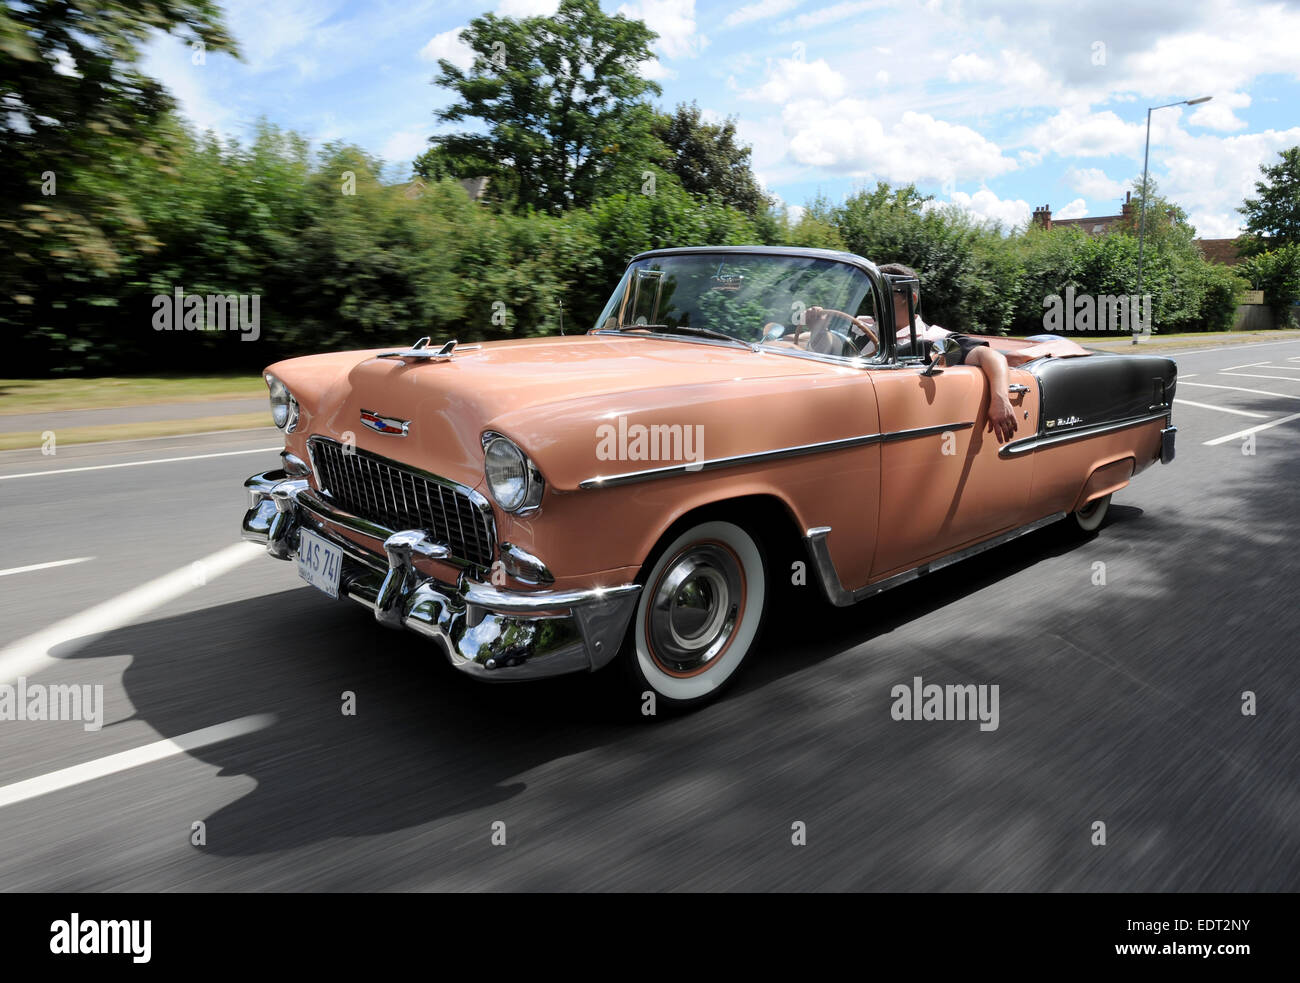 55 Chevy Bel Air Convertible, 50s American icon, rear view with ...